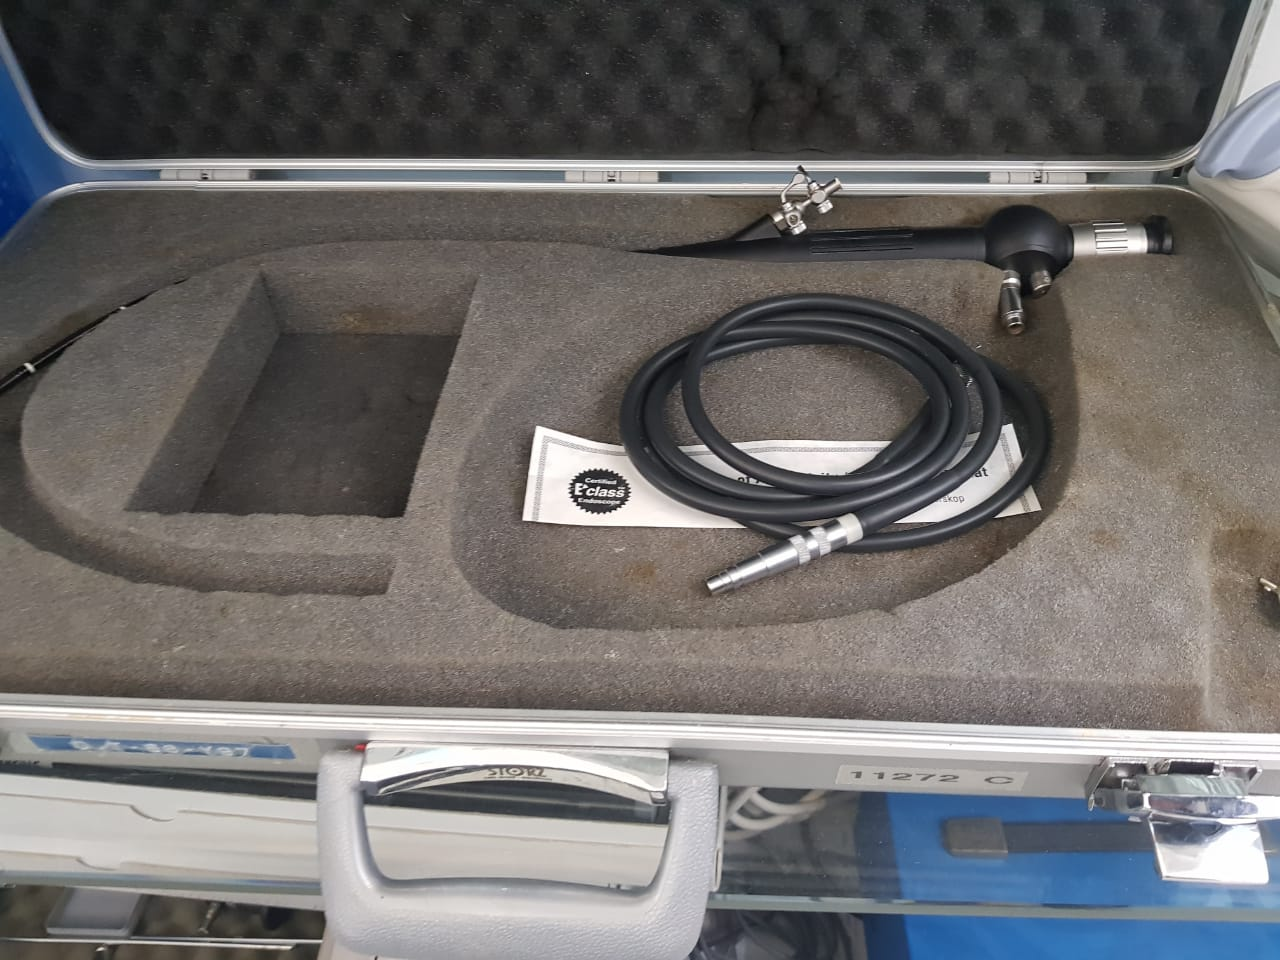 Karl Storz 11272C1 Flexible Cystoscope